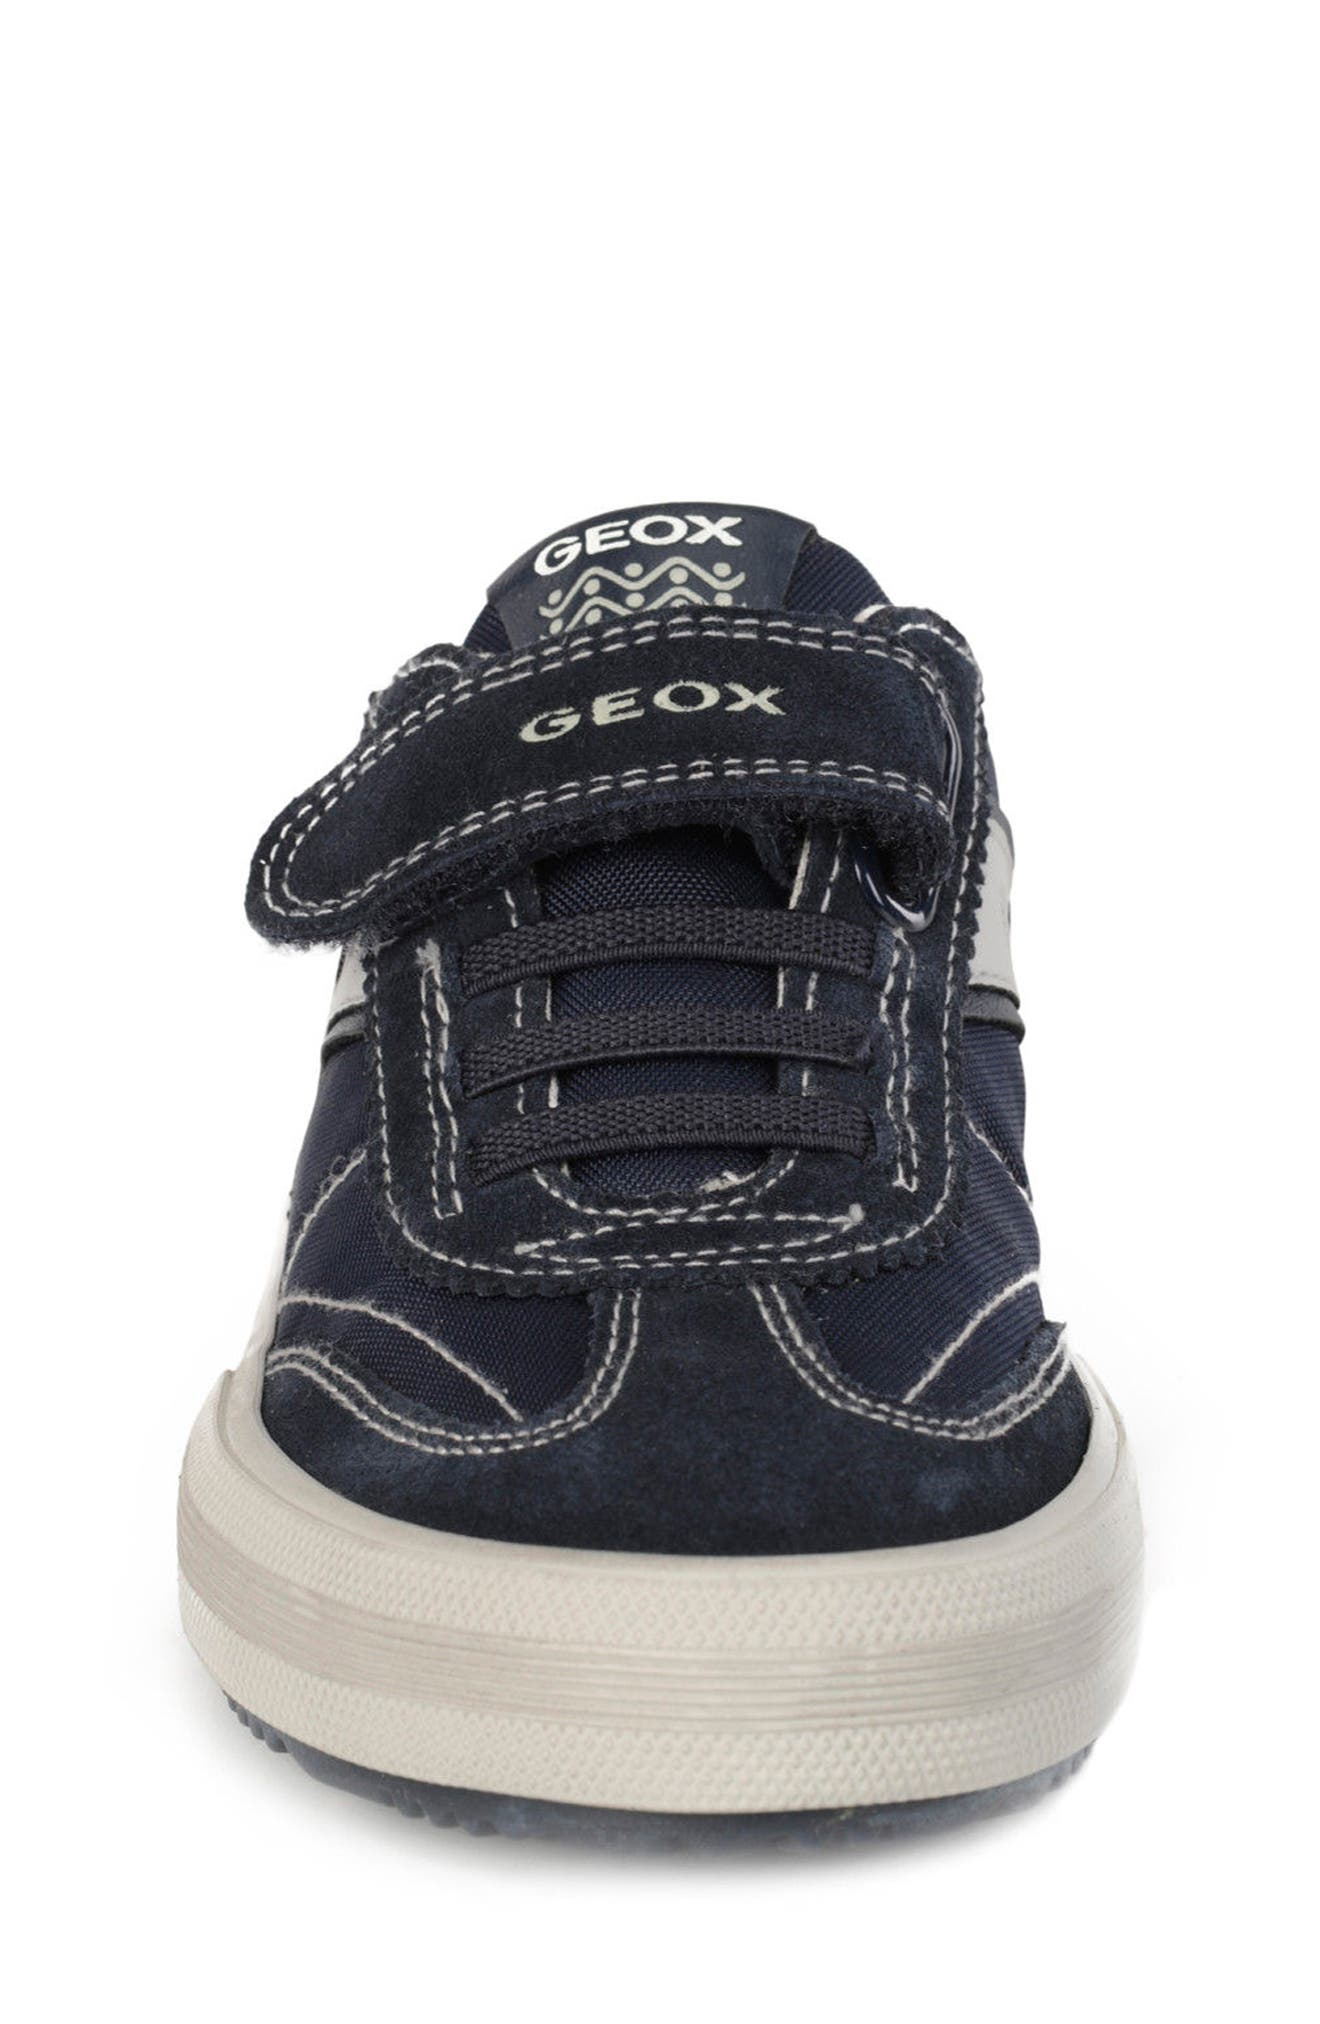 Alternate Image 4  - Geox Alonisso Low Top Sneaker (Toddler, Little Kid & Big Kid)